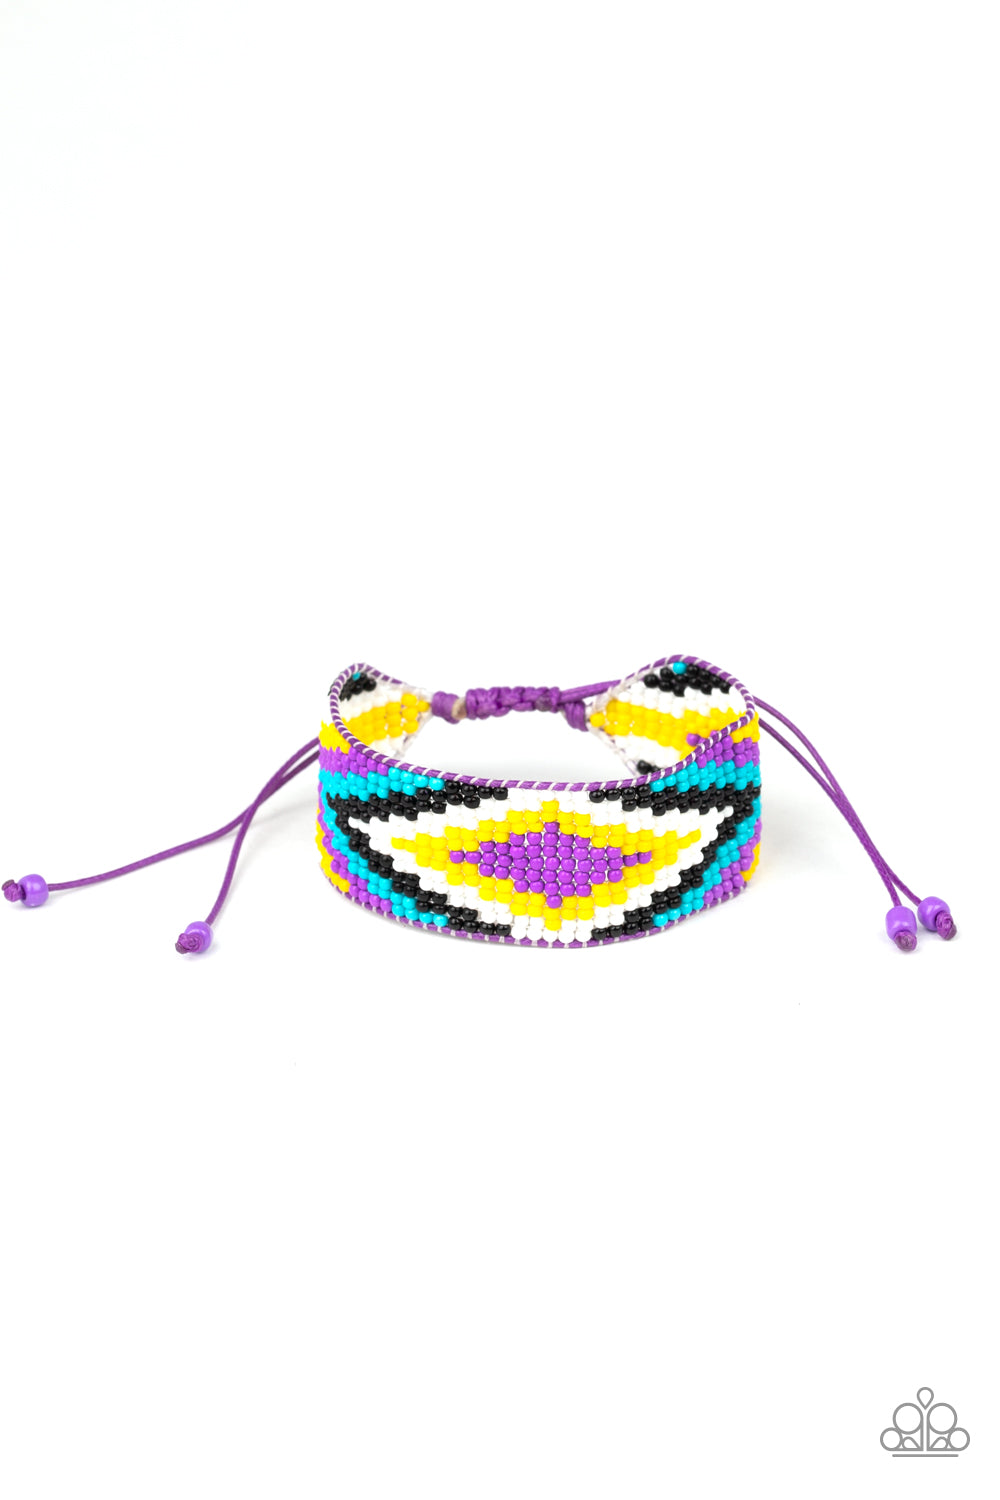 Paparazzi Bracelet ~ Beautifully Badlands - Purple